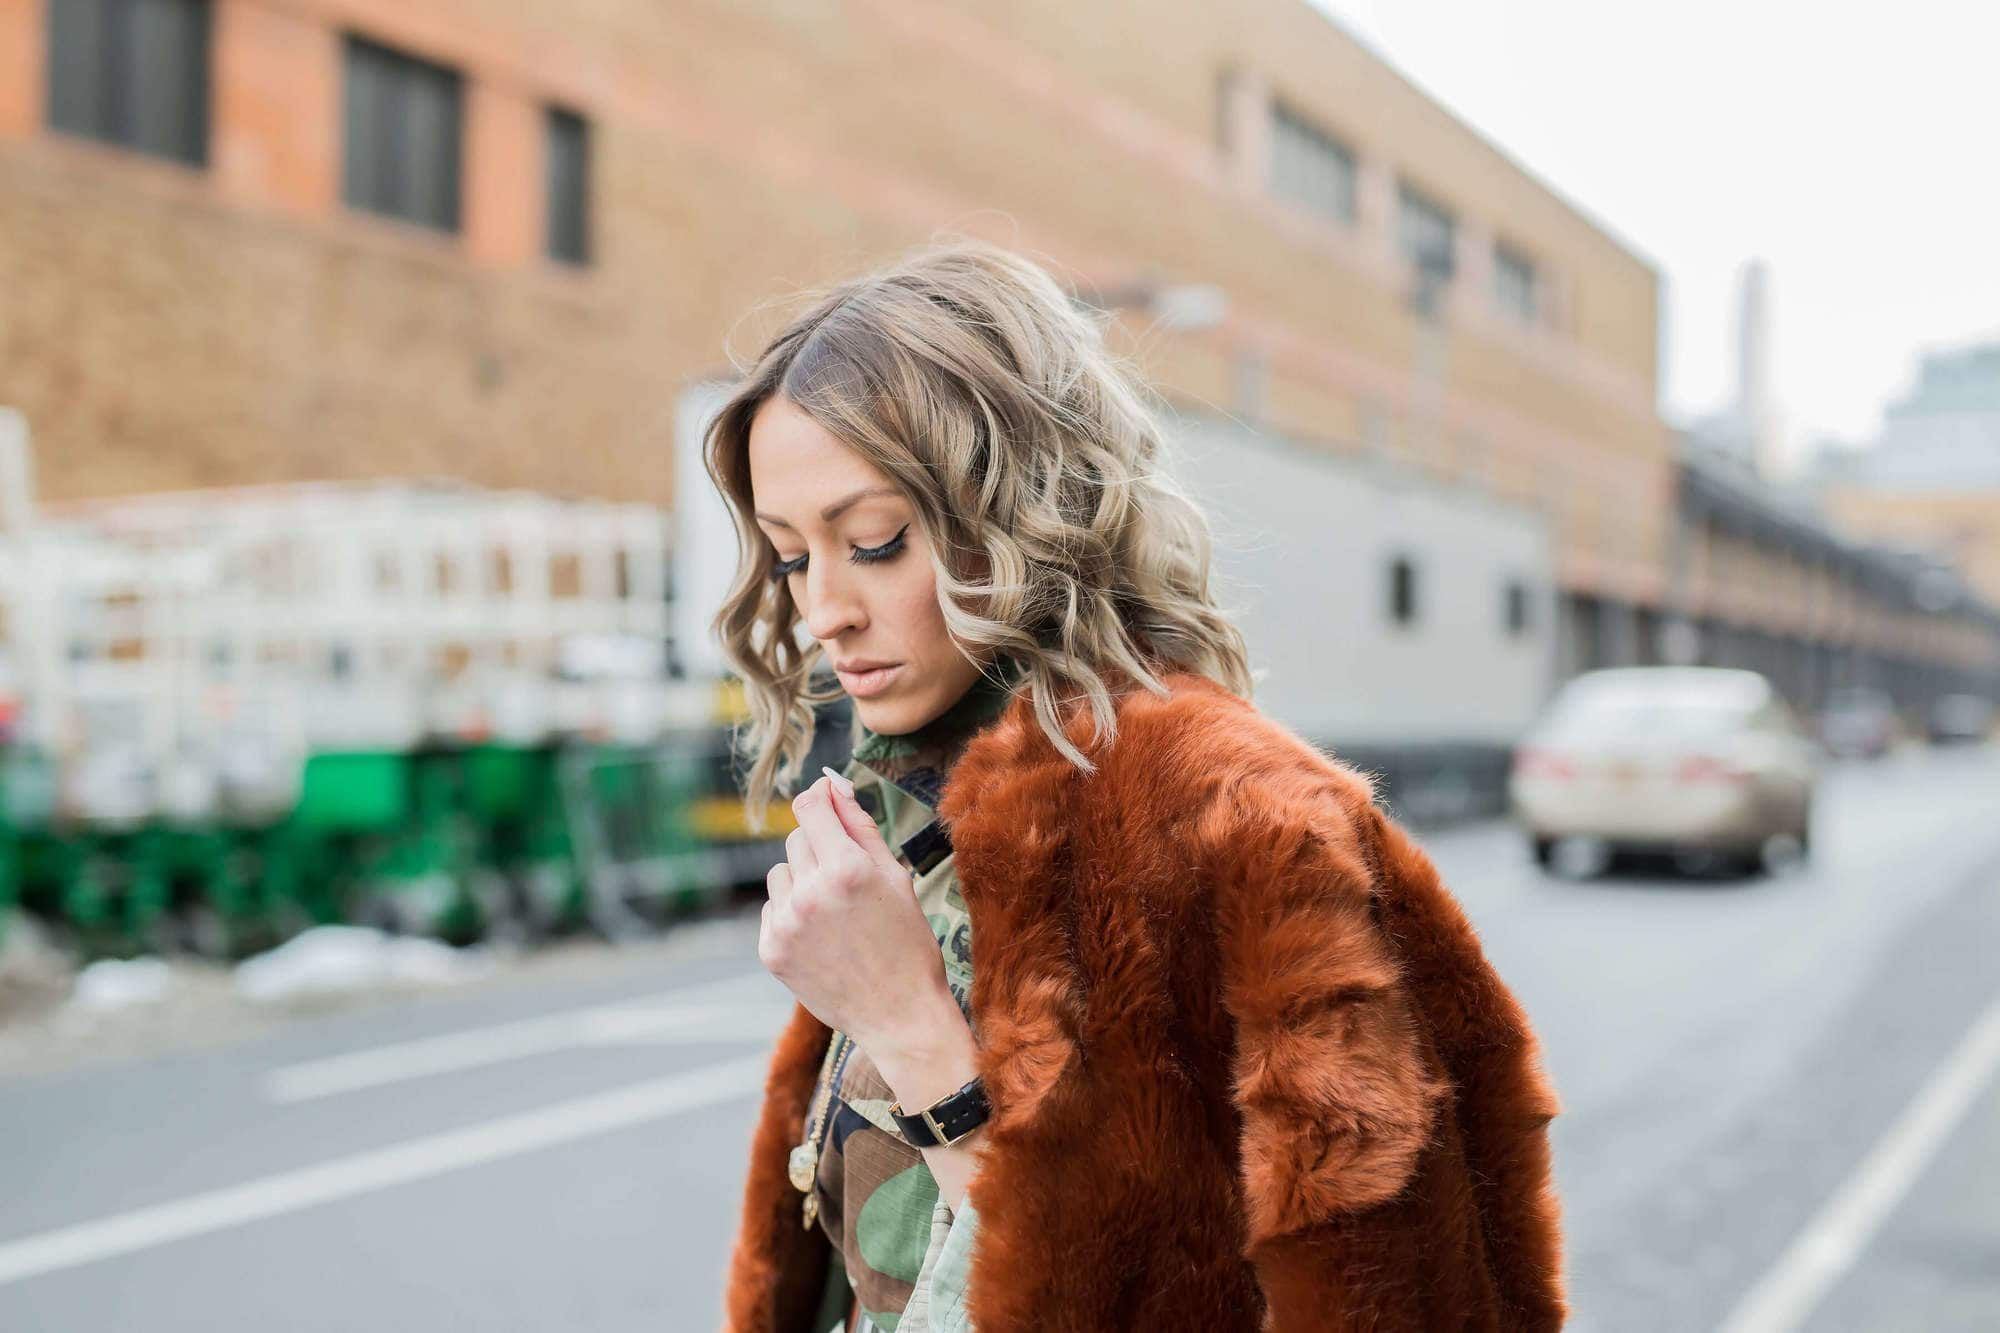 texturizing hair products for blogger waves